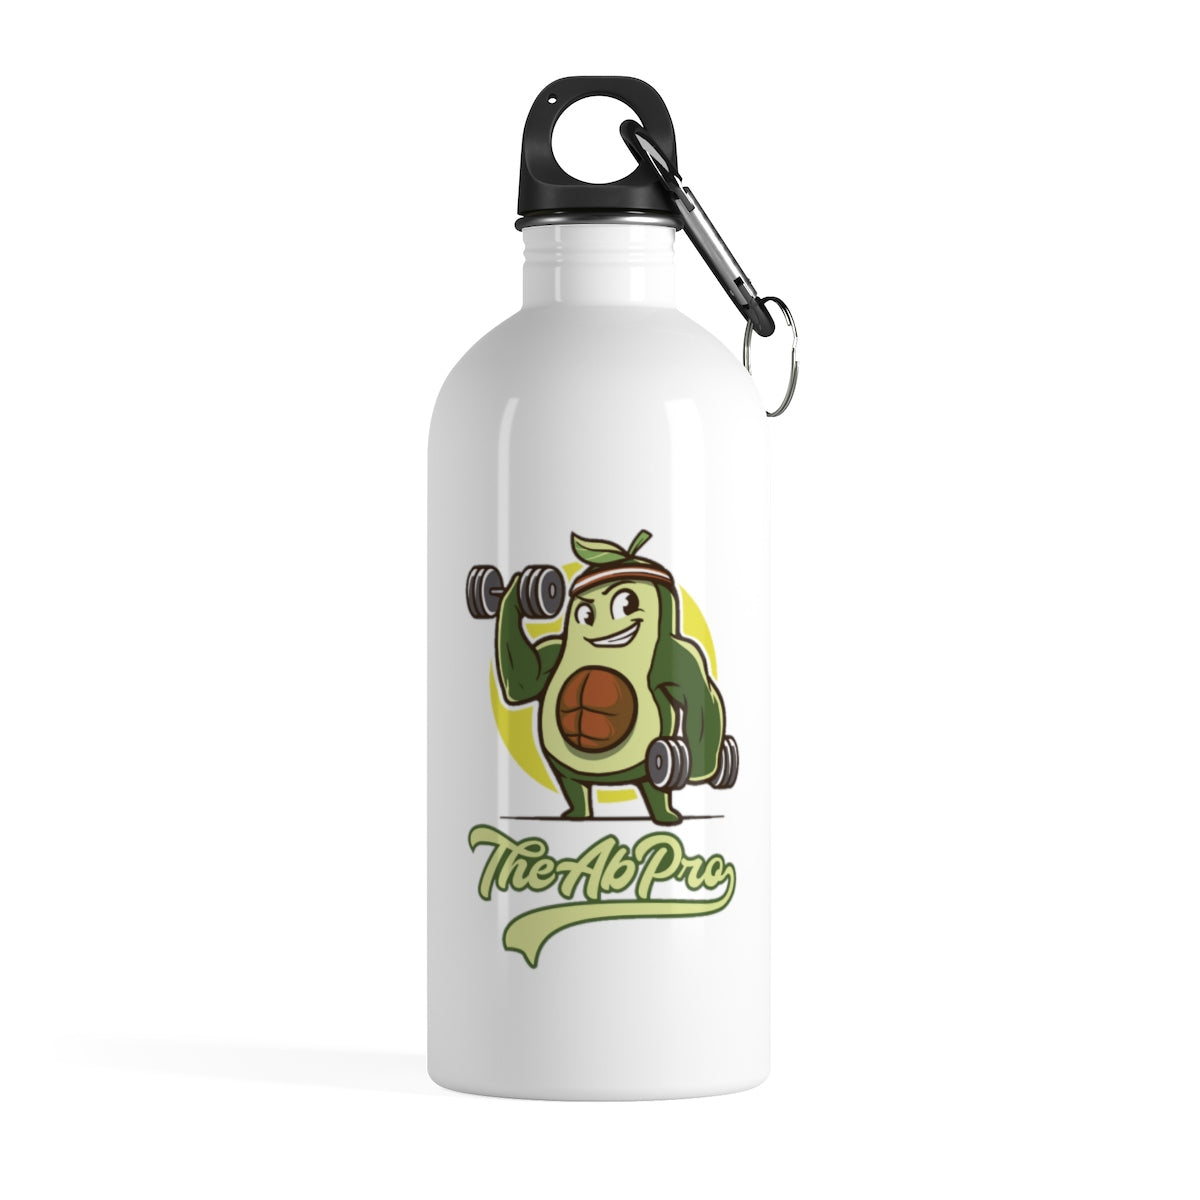 "Avocado Stainless Steel Water Bottle - Fit Family Apparel by Erick ""The Ab Pro"""